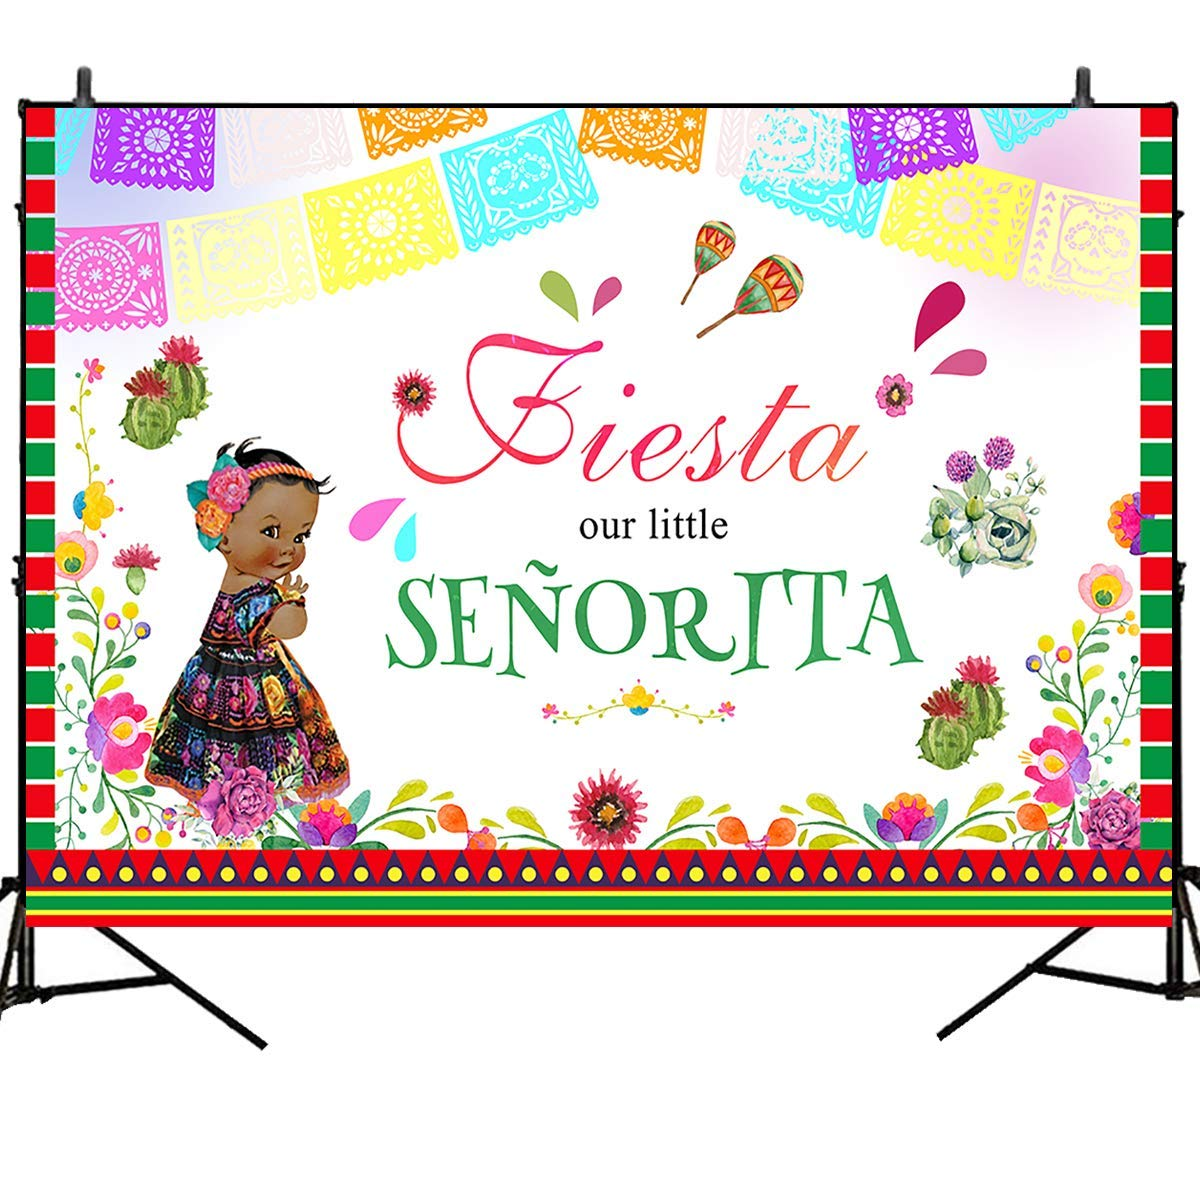 Mehofoto Fiesta Baby Shower Backdrops Tribe Little Princess Photography Background 7x5ft Watercolor Flower Flags Mexico Style Vinyl Photoshoot Party Banner Decor